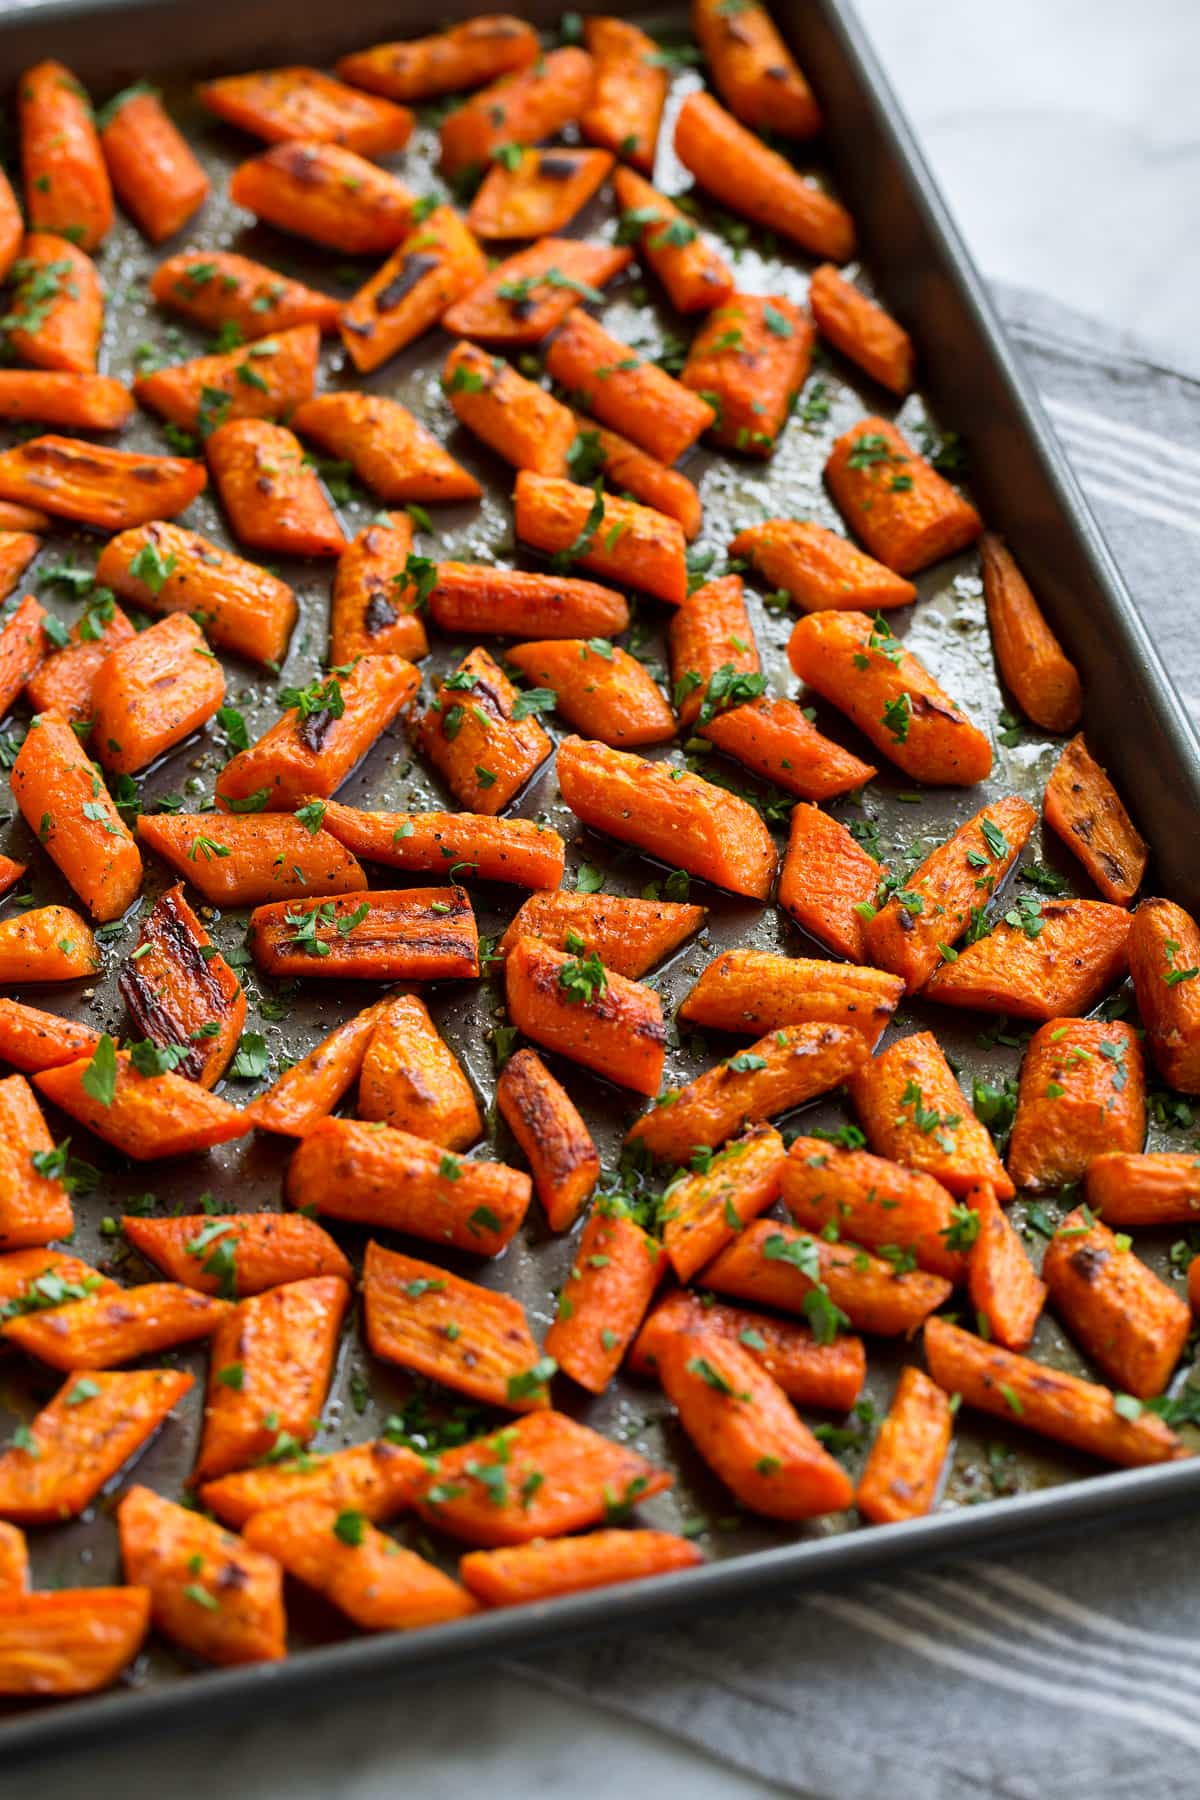 Photo: Roasted carrots shown from the side on a dark baking sheet.